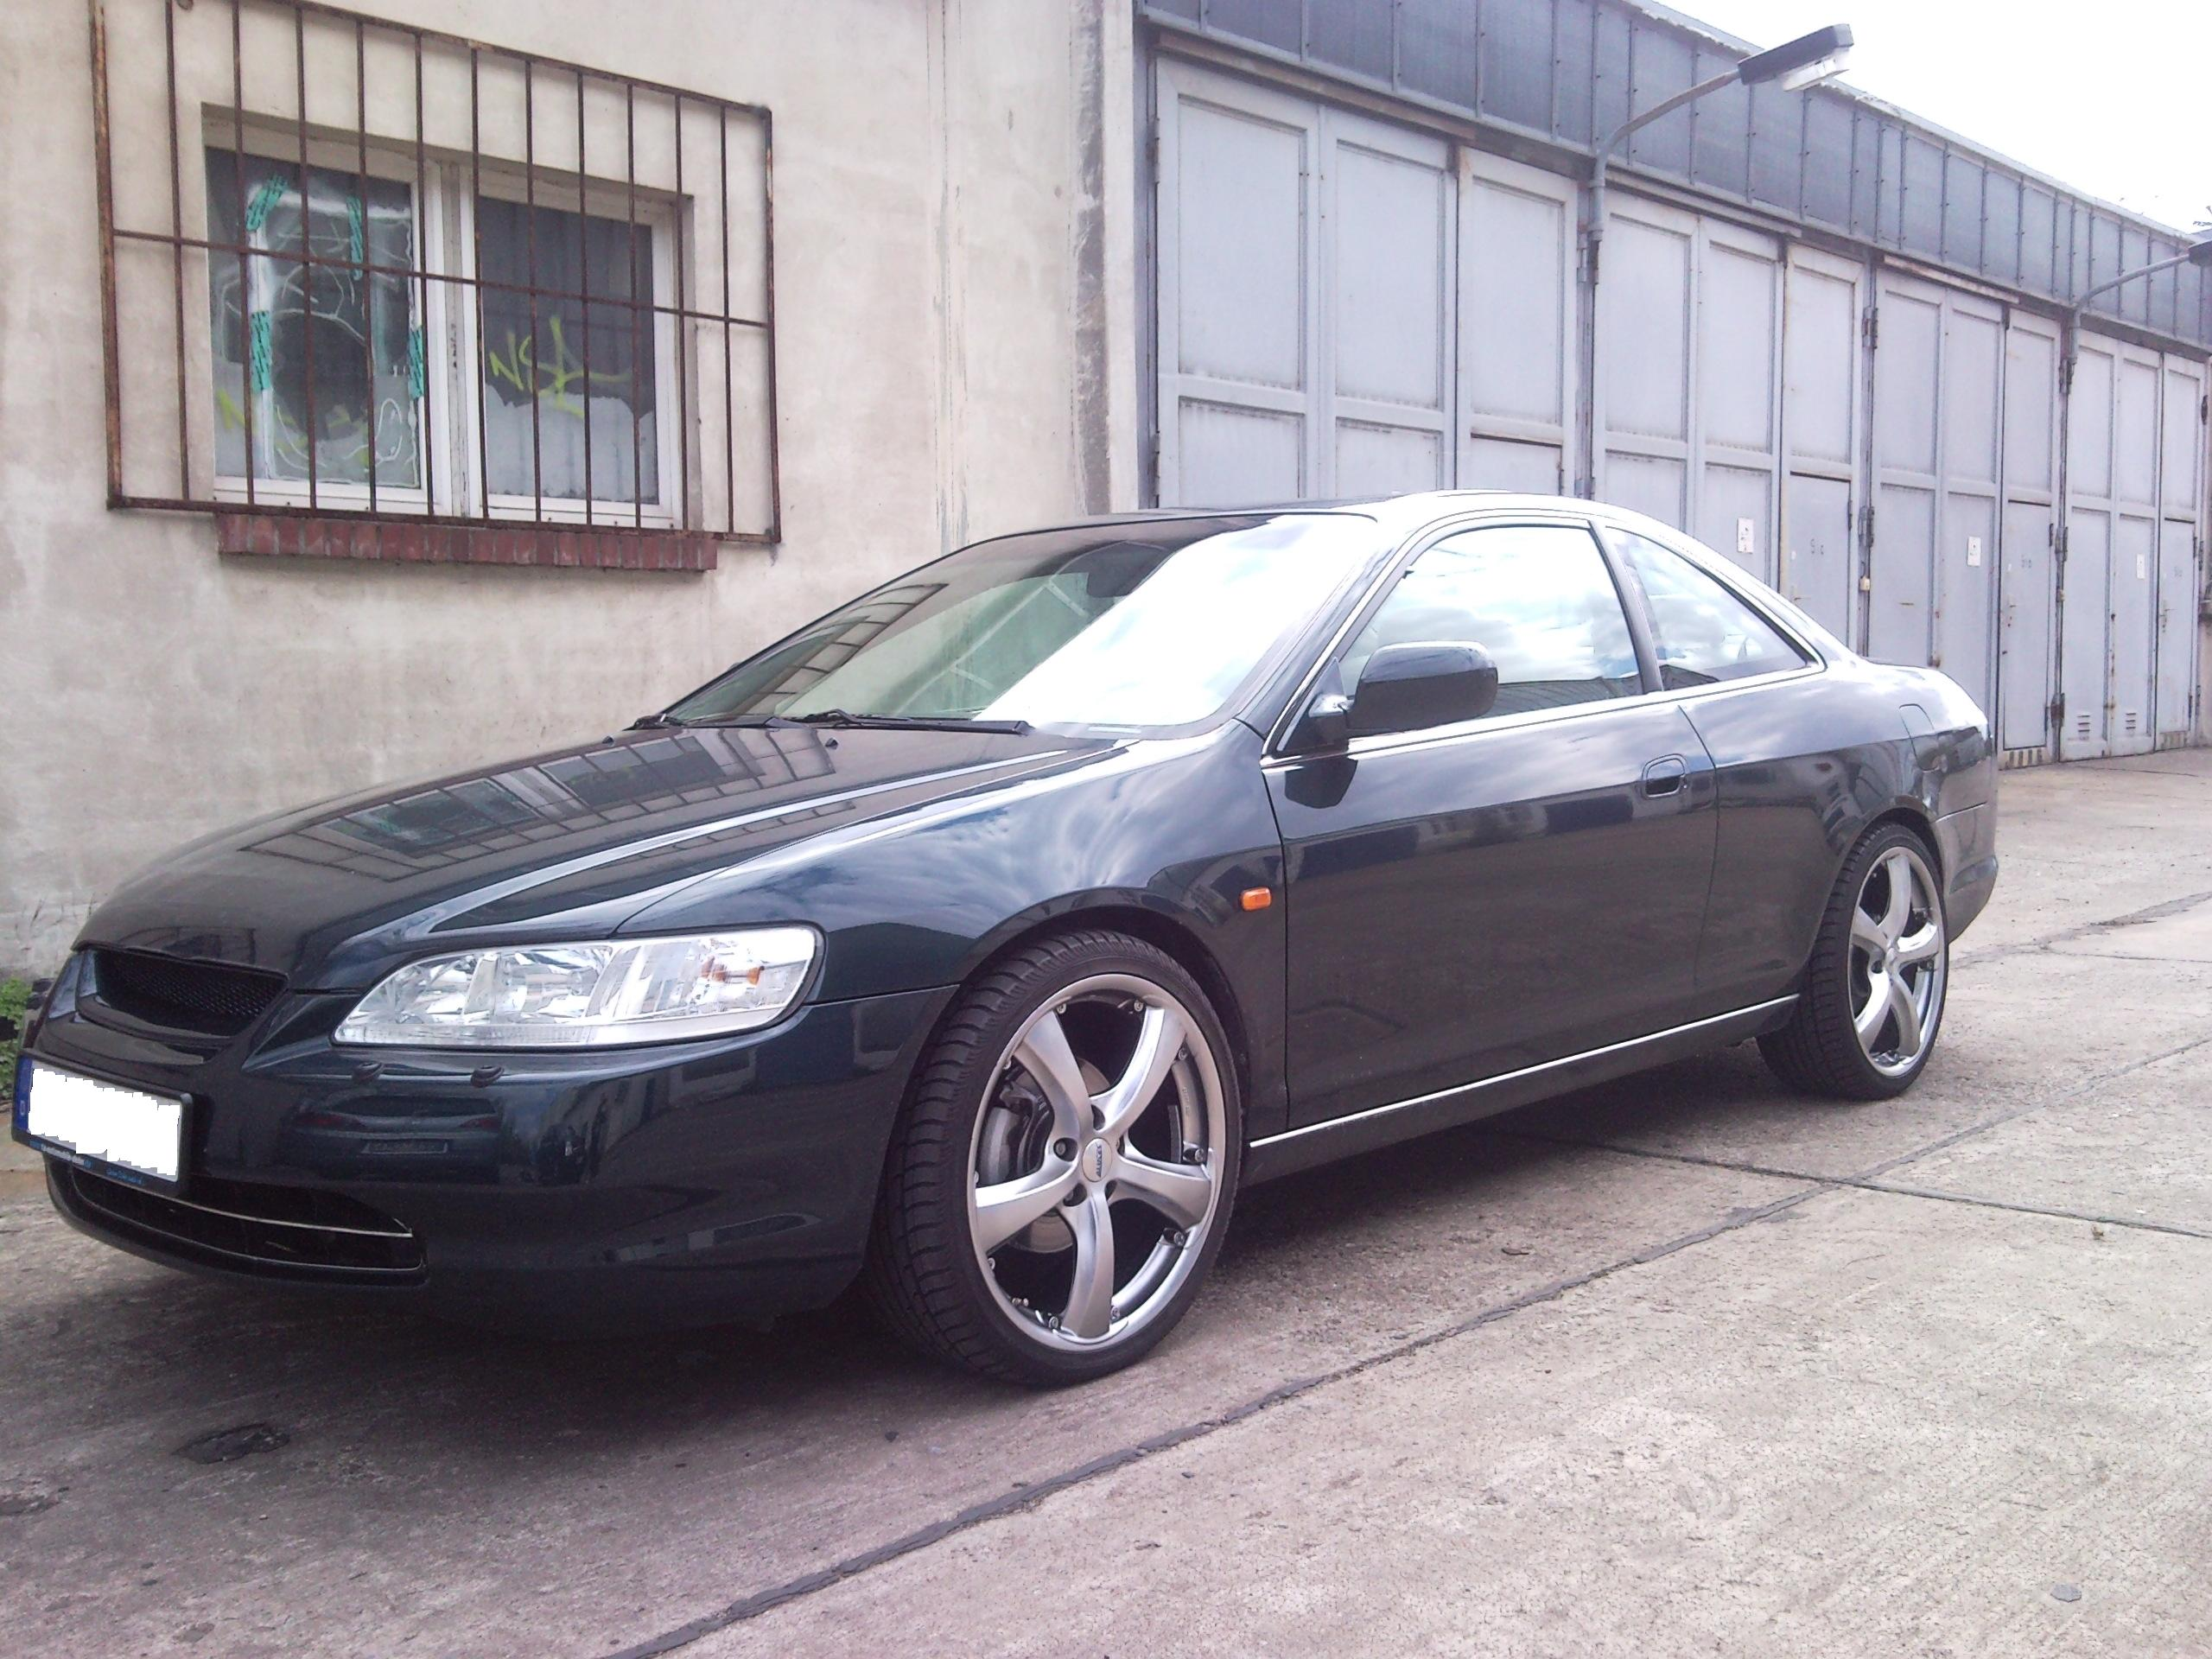 Honda Accord 3.0 2006 photo - 9